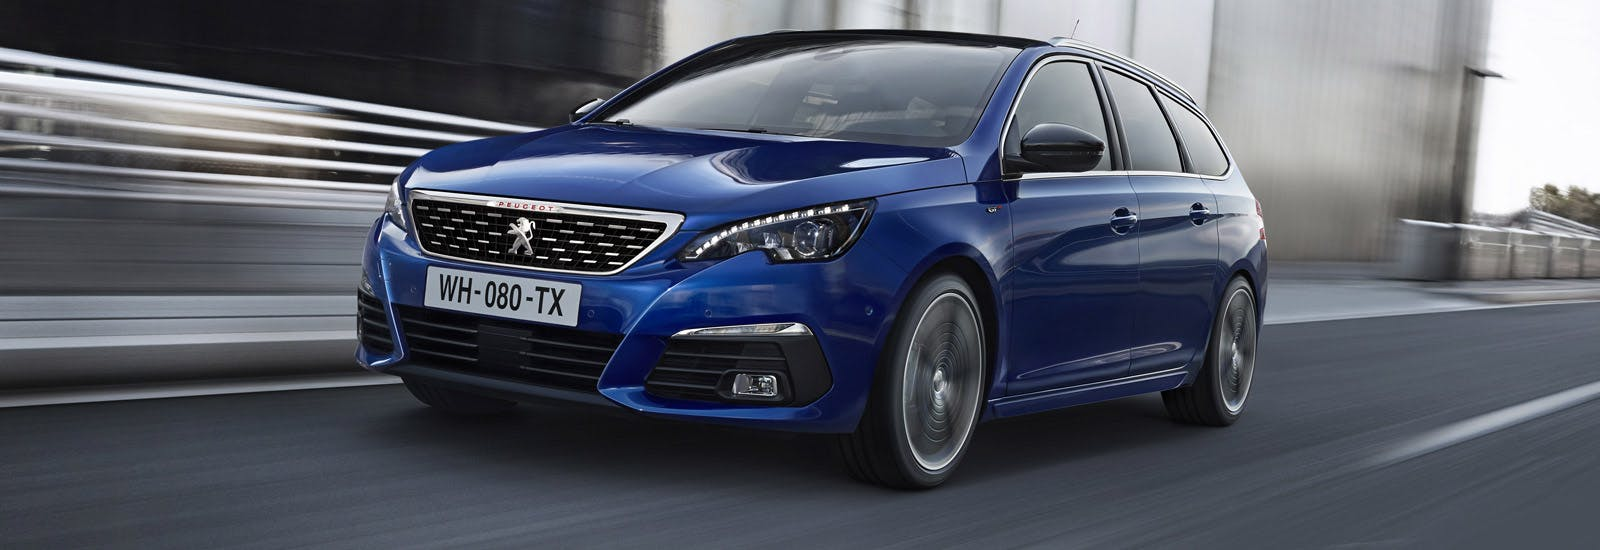 Peugeot 308 updated with fresh look and engines (Photos, Price, Specs and Release date)